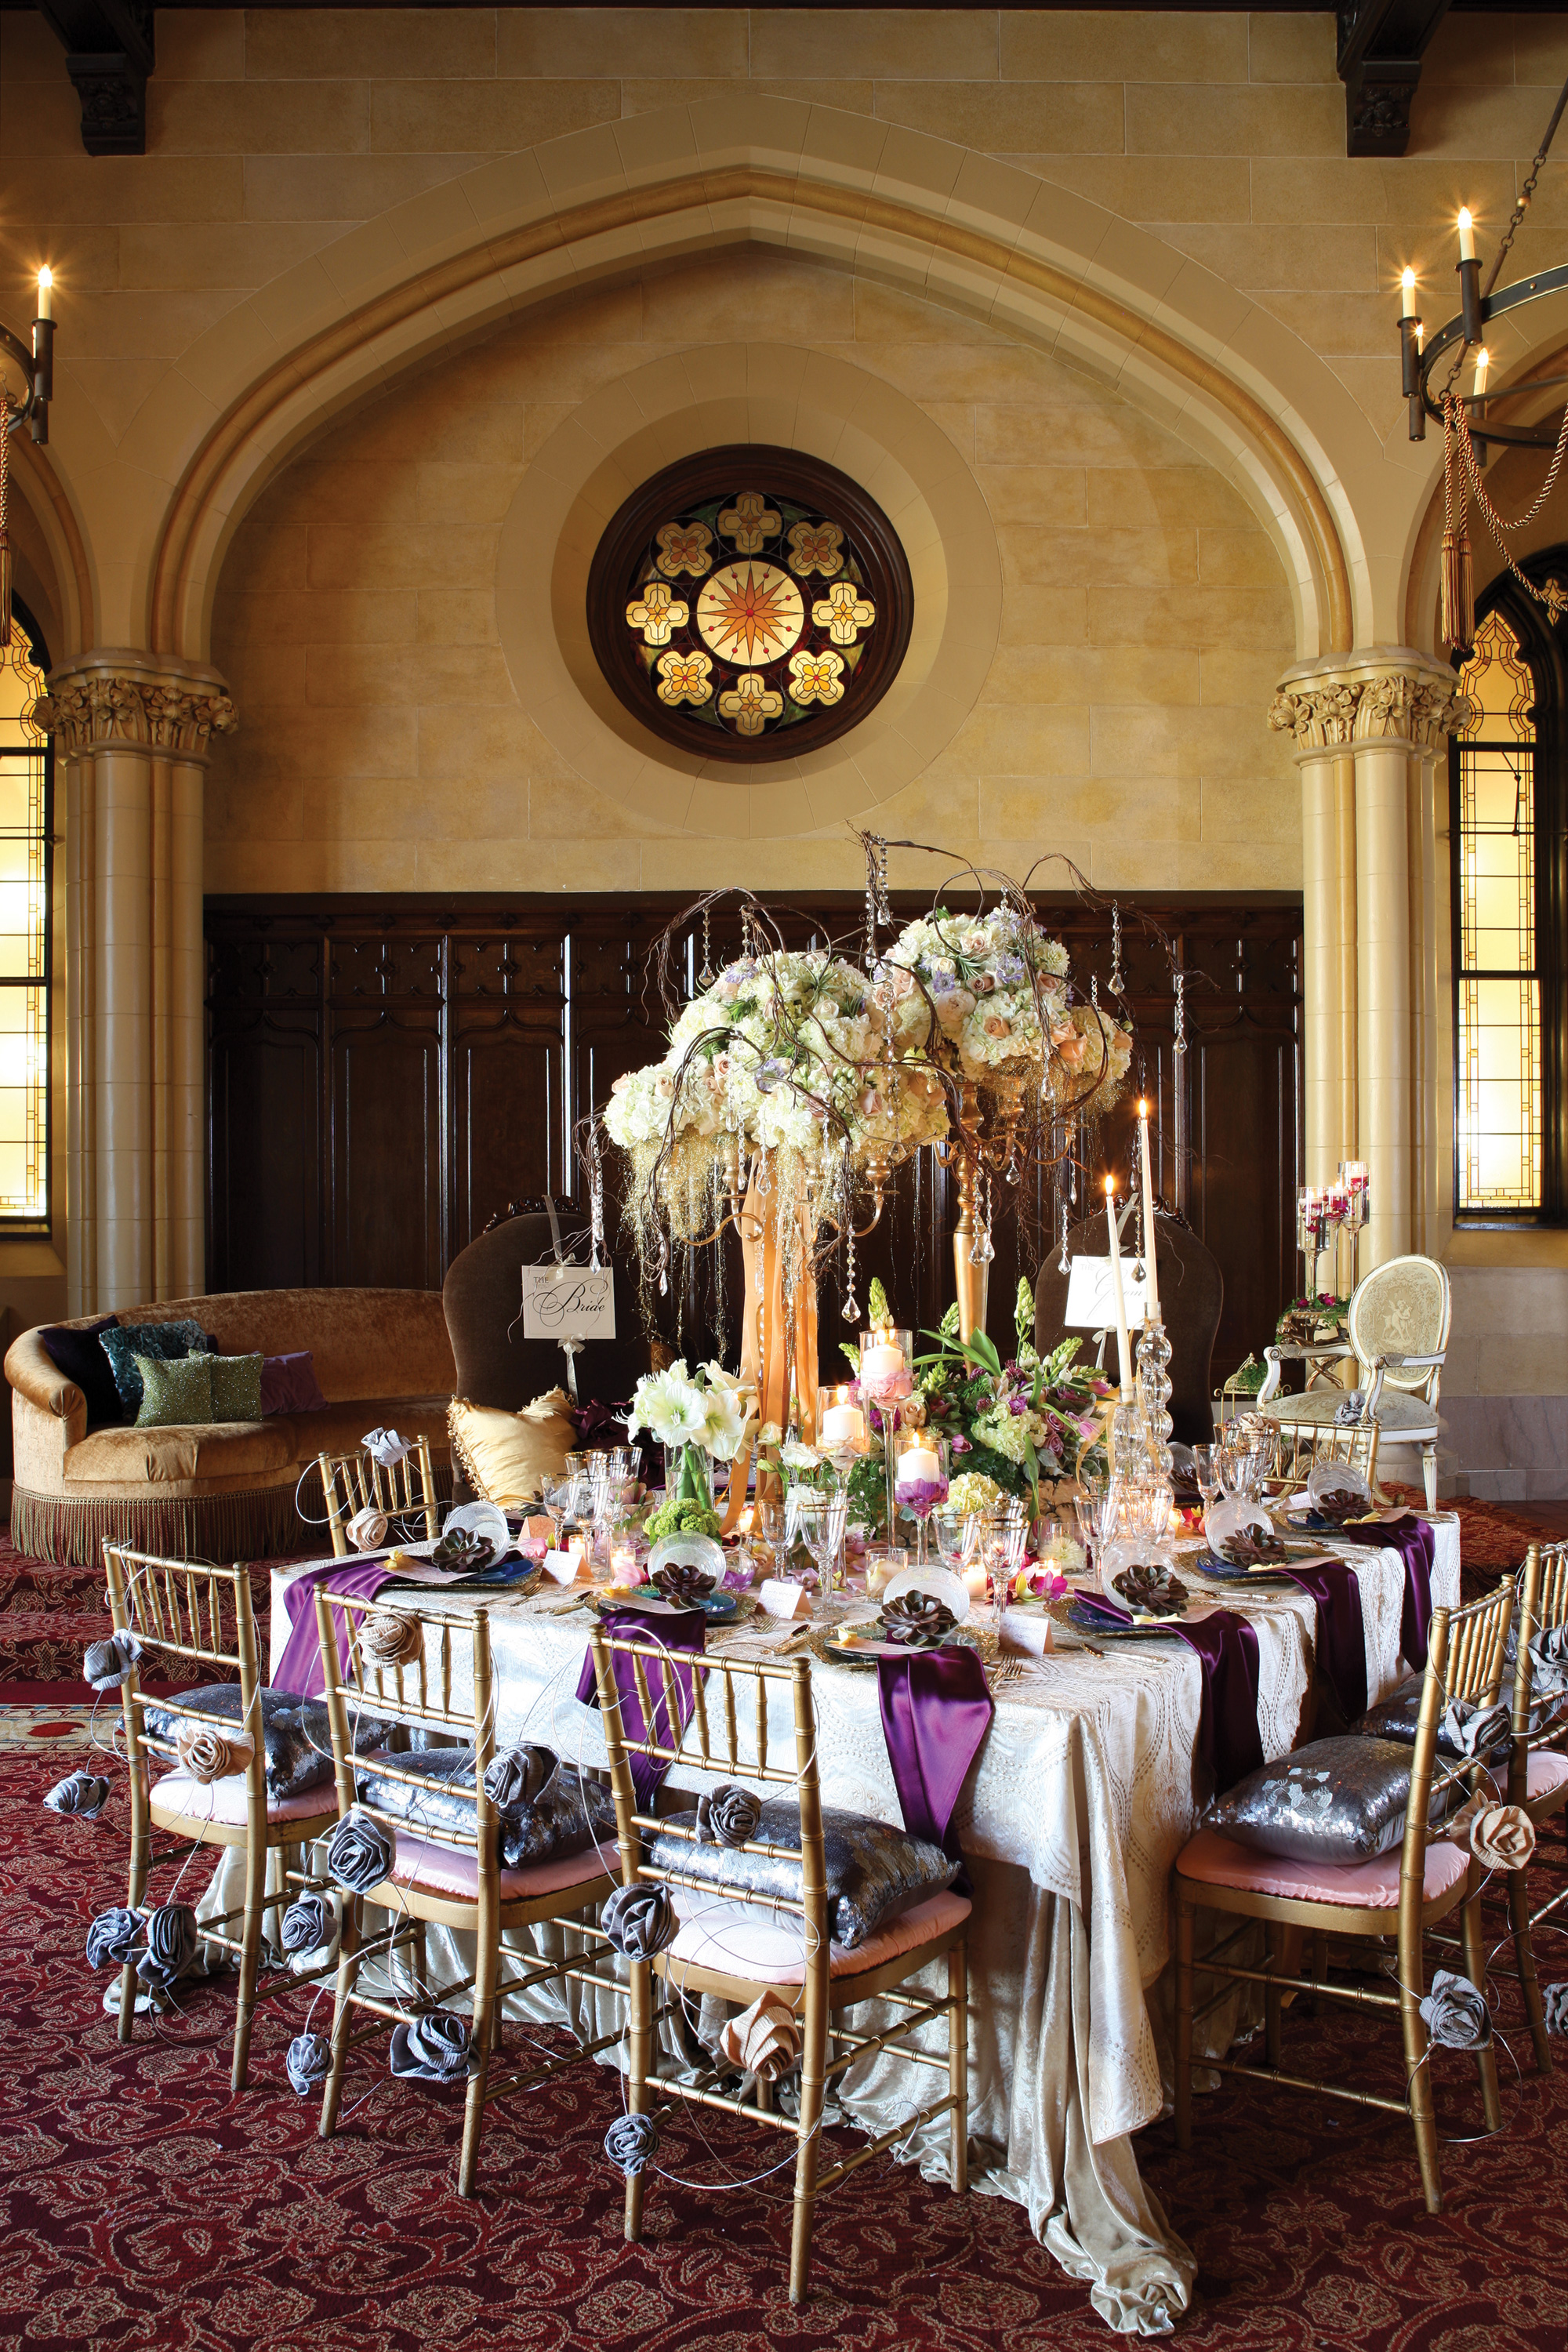 Gala Cloths Top Tabletop Decor Provider Of Tablecloth And